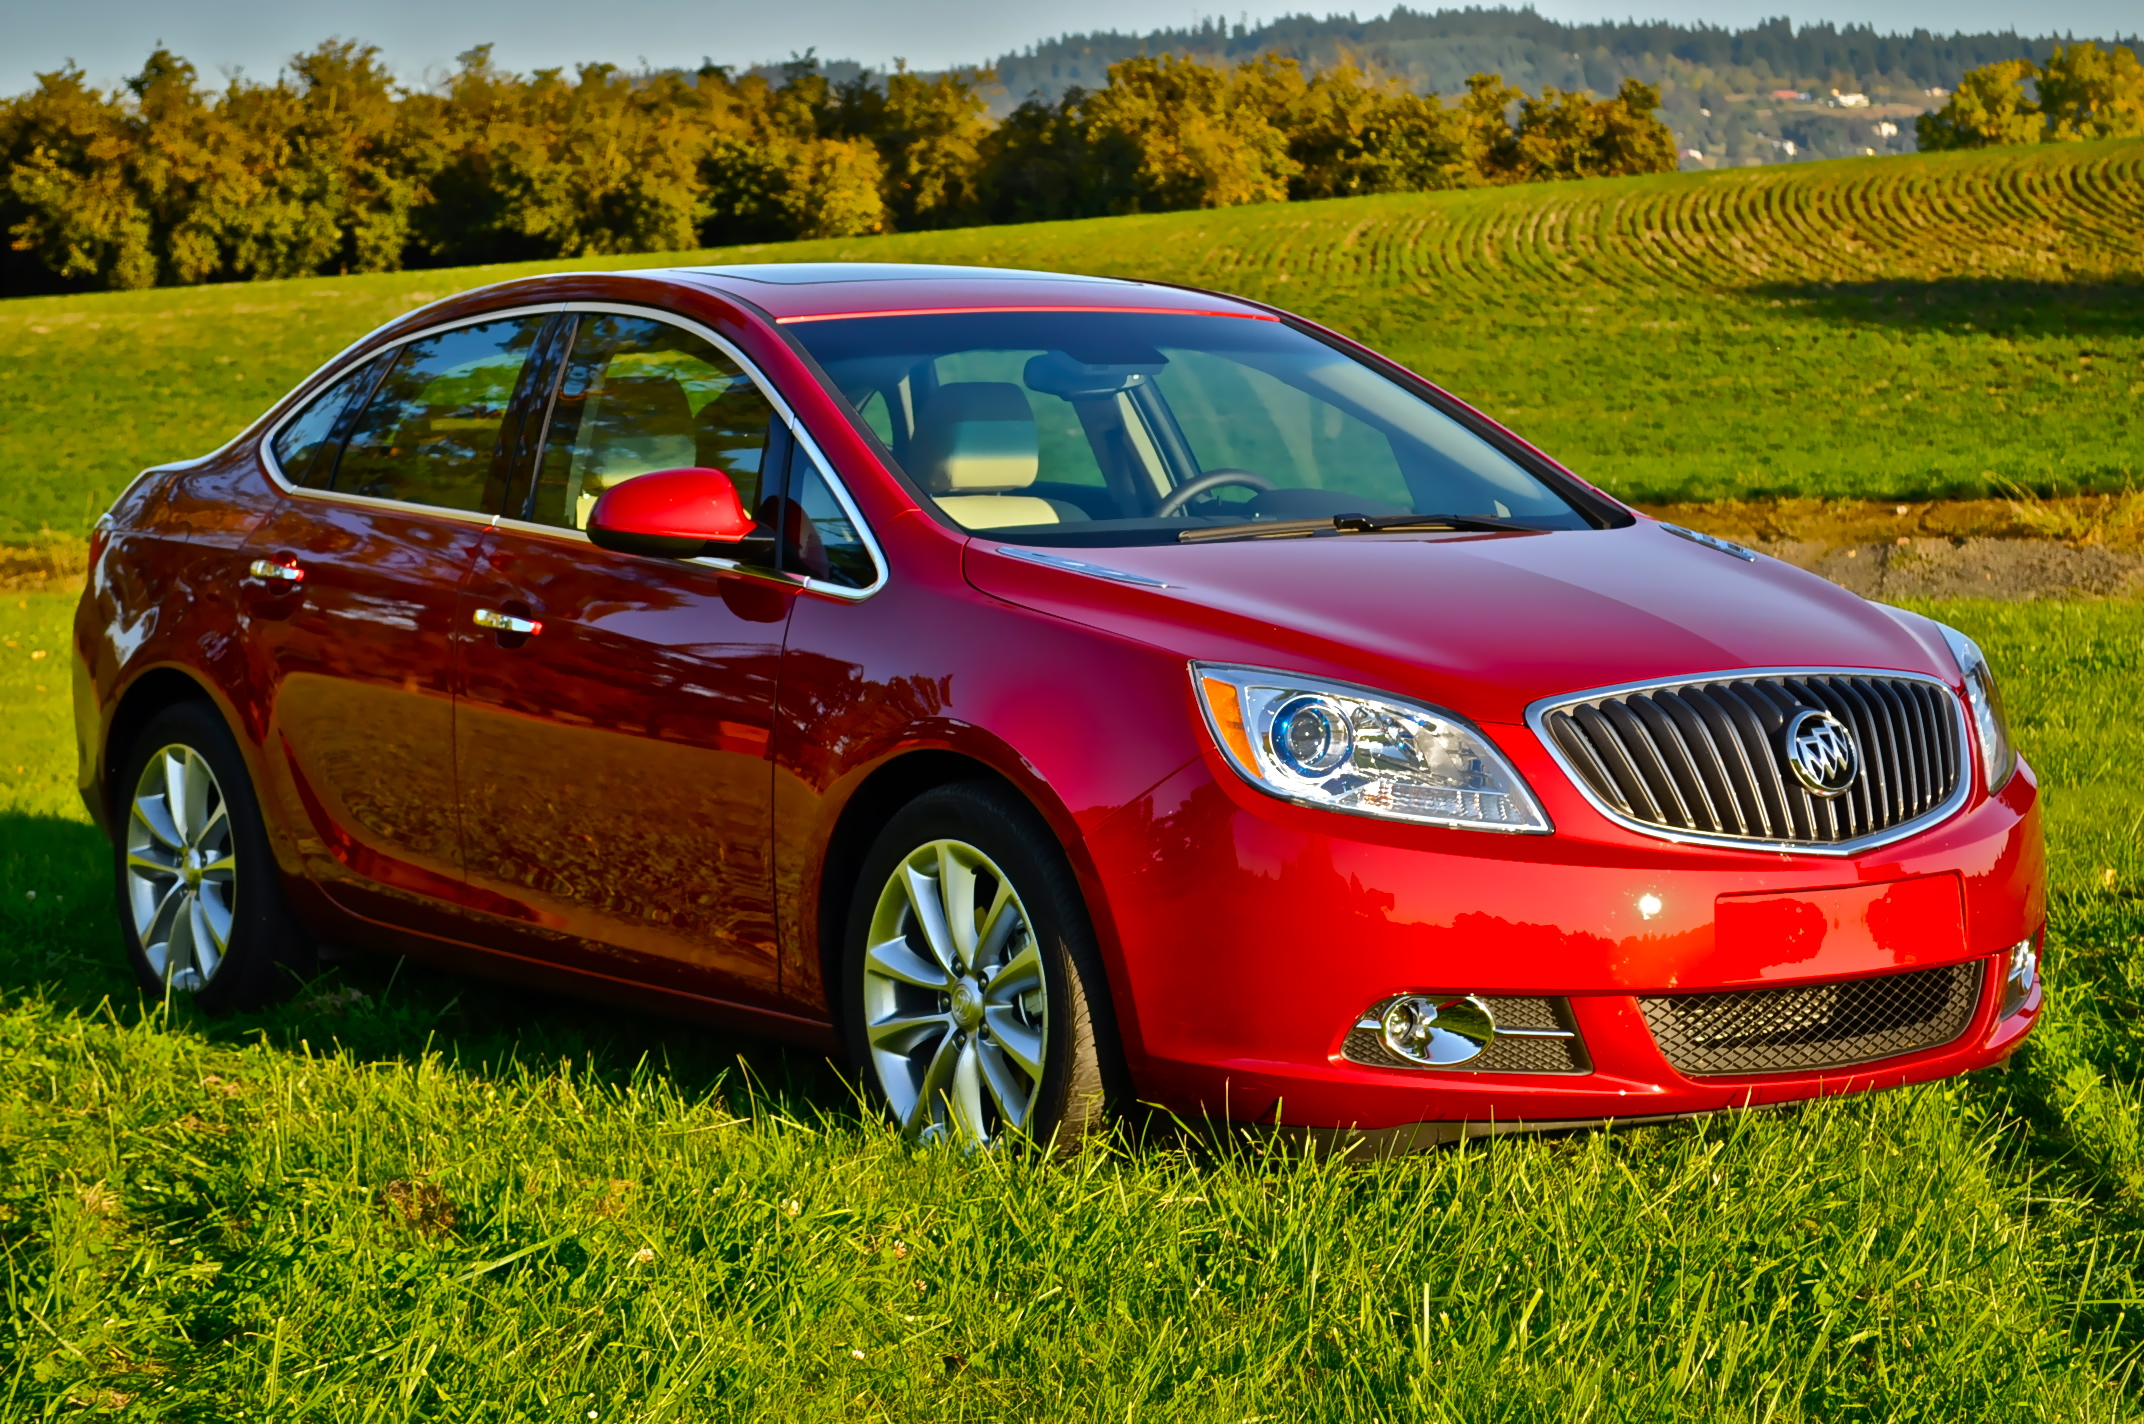 Buick Verano Hybrid Coming But Not Until 2015